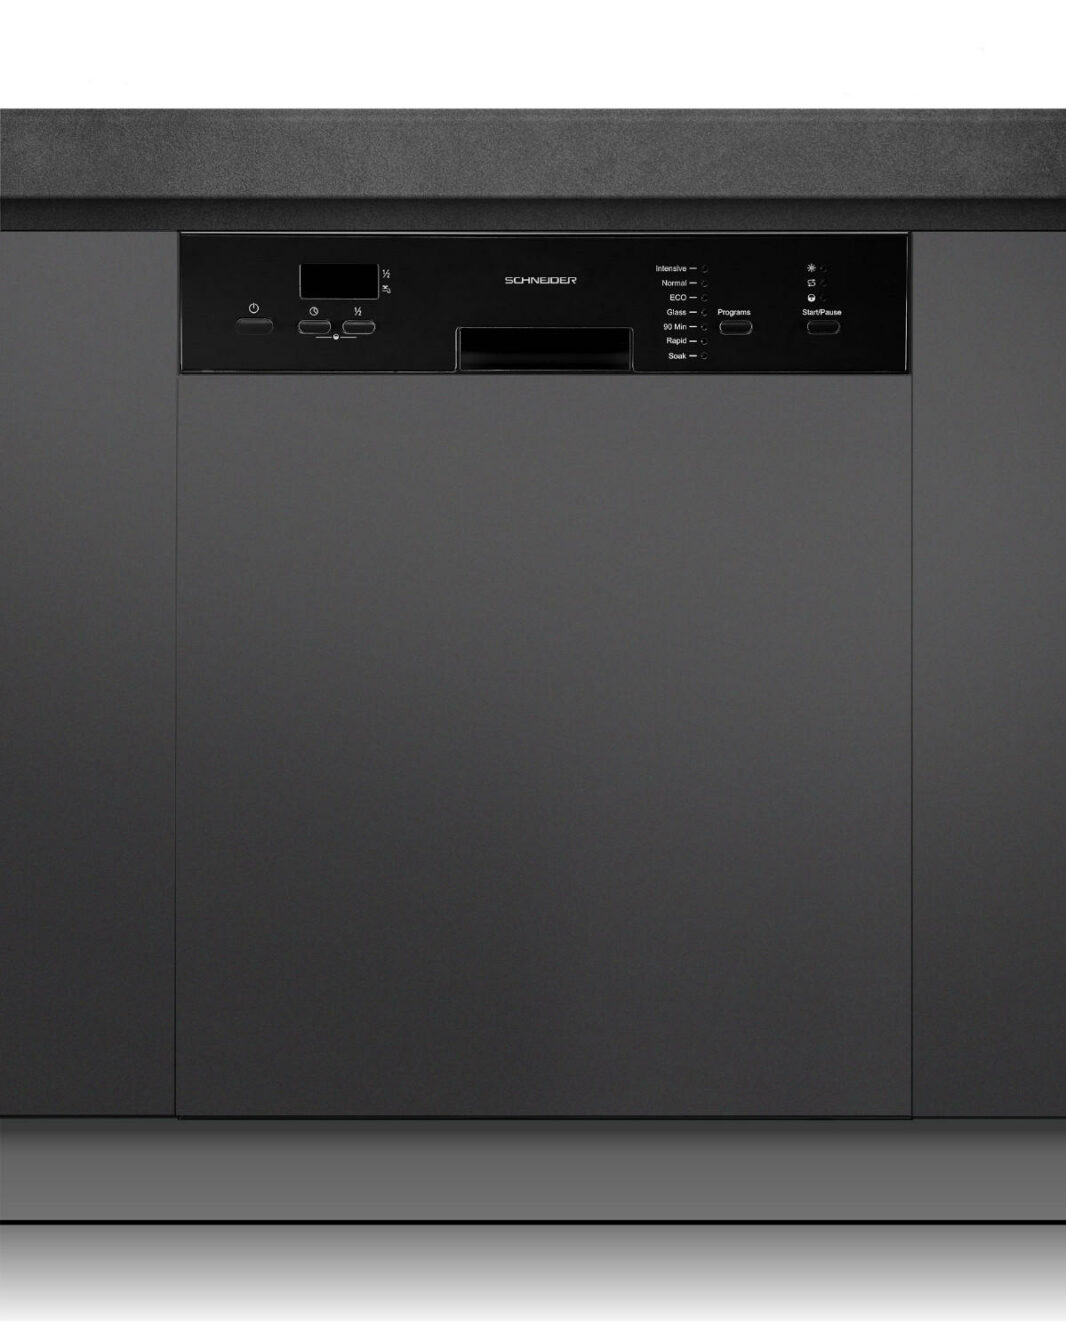 Built-in dishwasher 60 cm black - Schneider